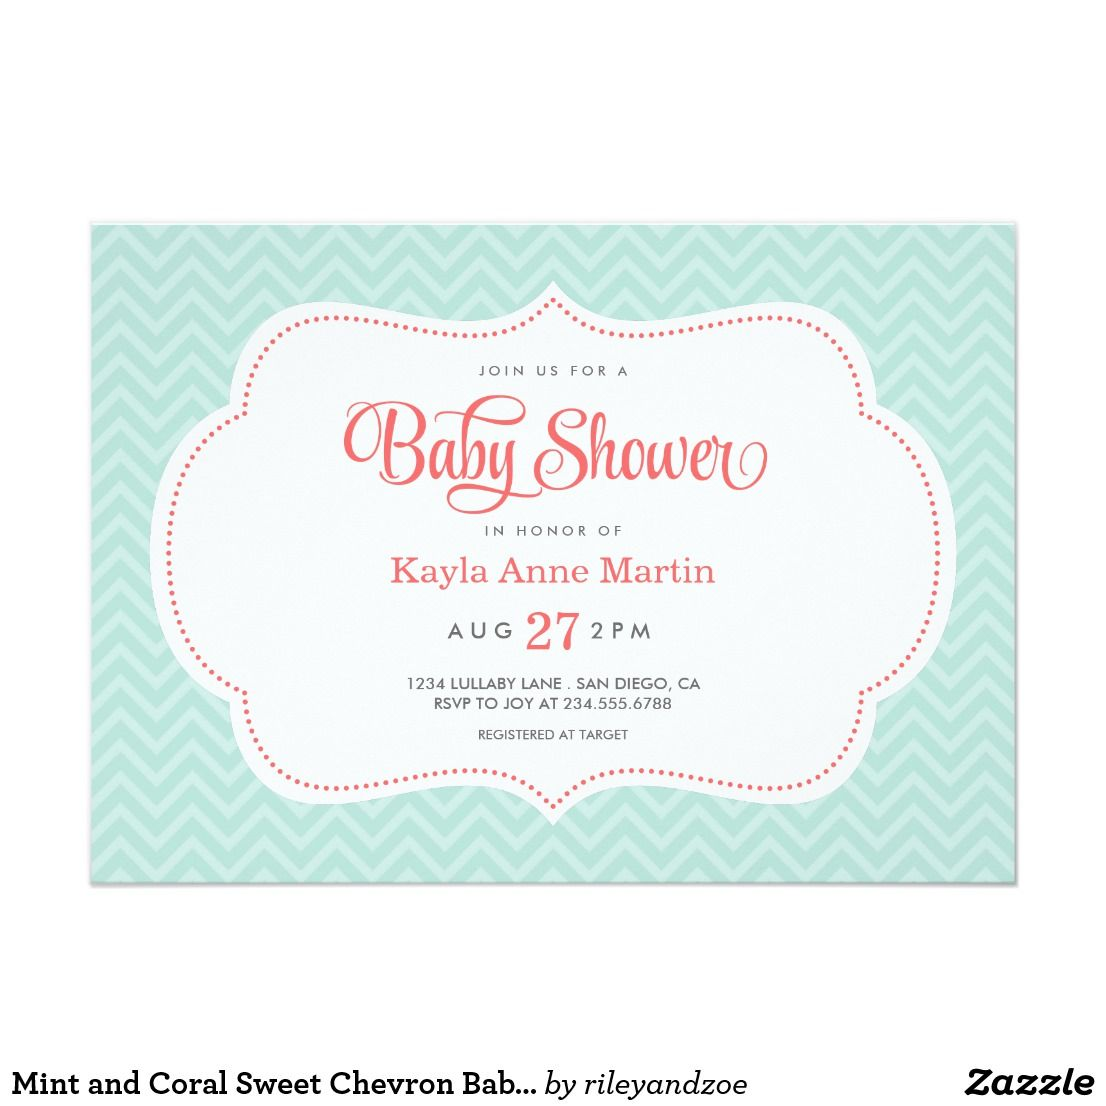 Mint and Coral Sweet Chevron Baby Shower Card | Chevron baby showers ...